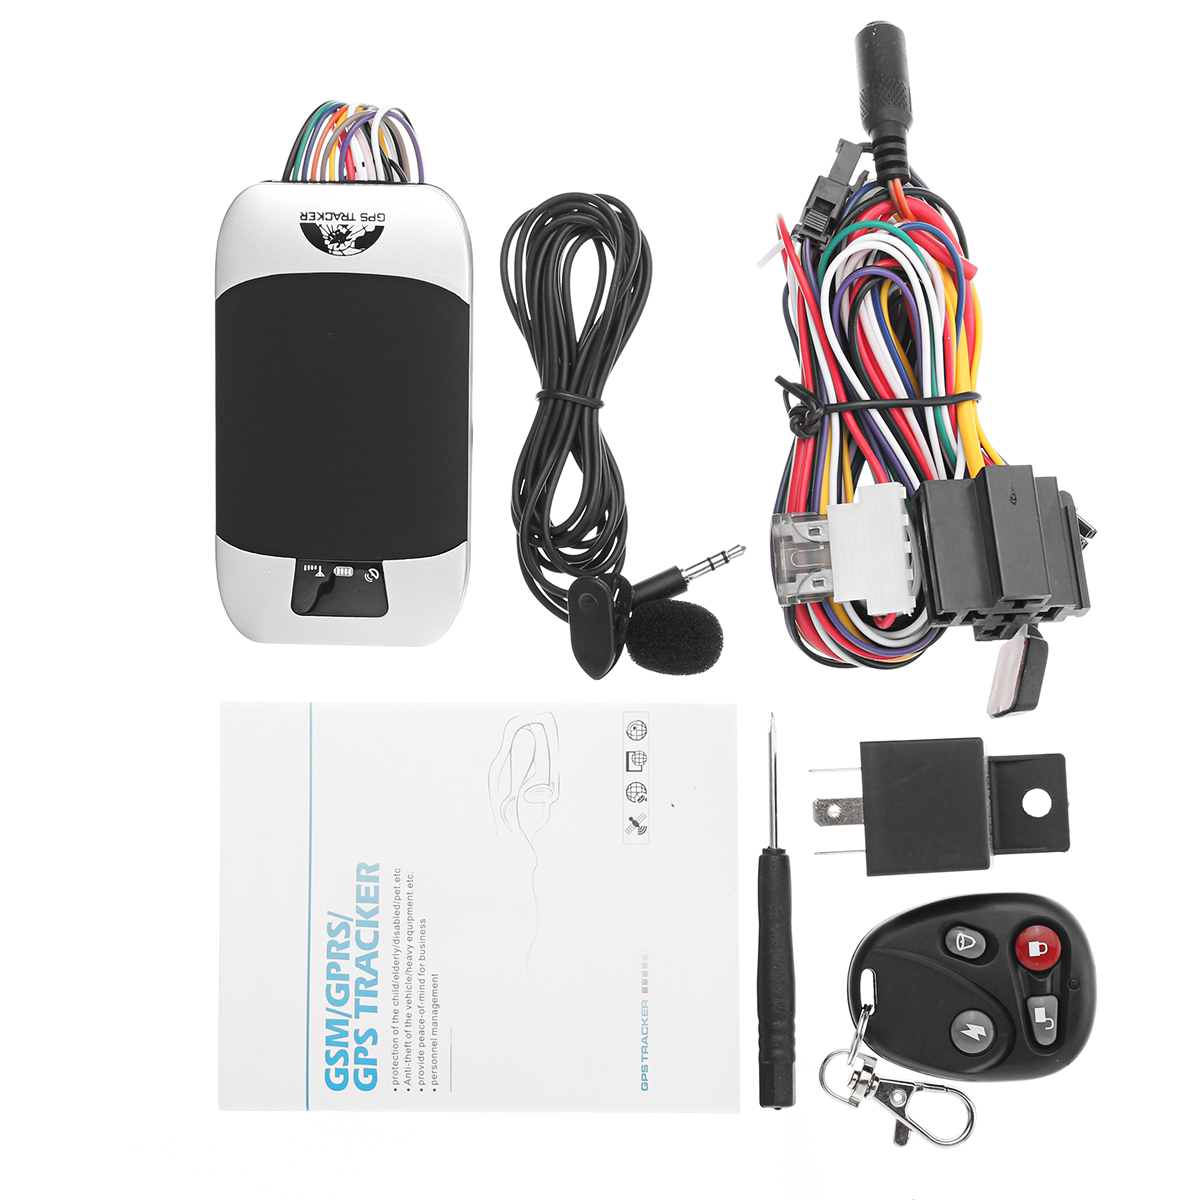 GSM GPRS GPS Car Tracker Rewire Security Vehicle Van Tracking Device System Kit